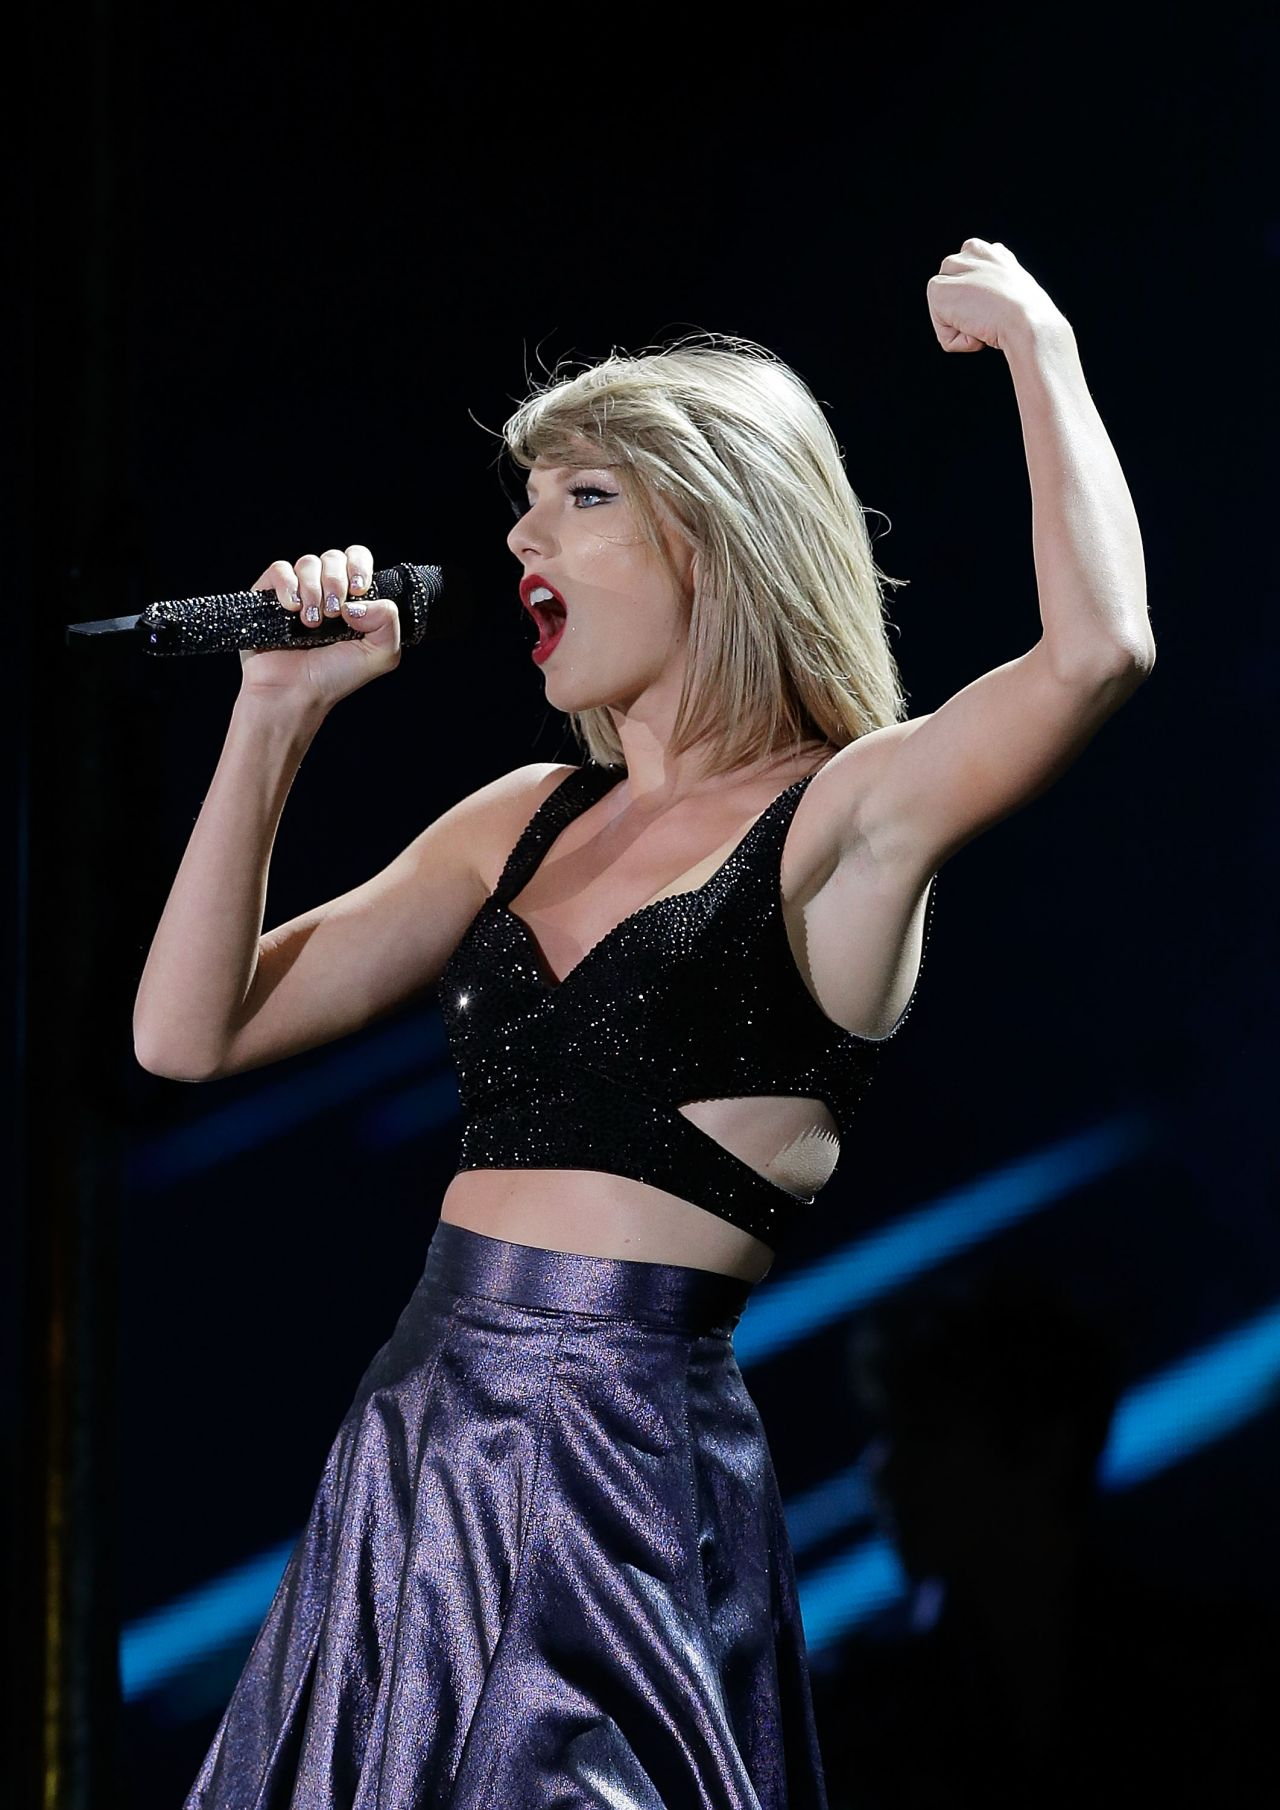 Taylor Swift Performs At 1989 World Tour In Sydney 11 28 2015 Celebmafia